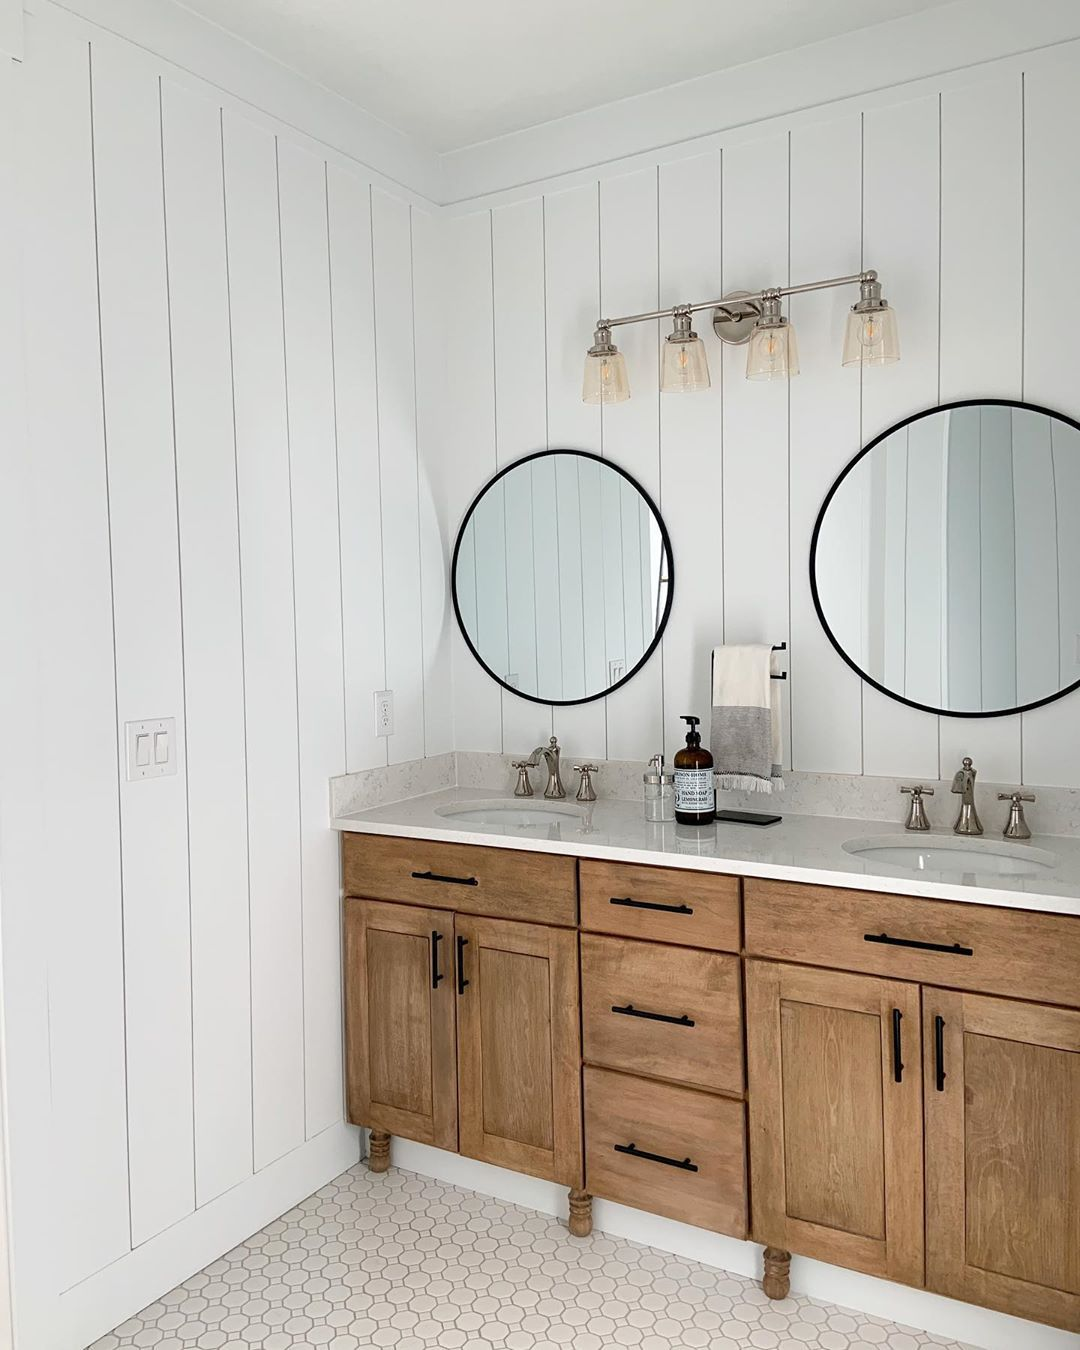 Bathroom with natural wood stain